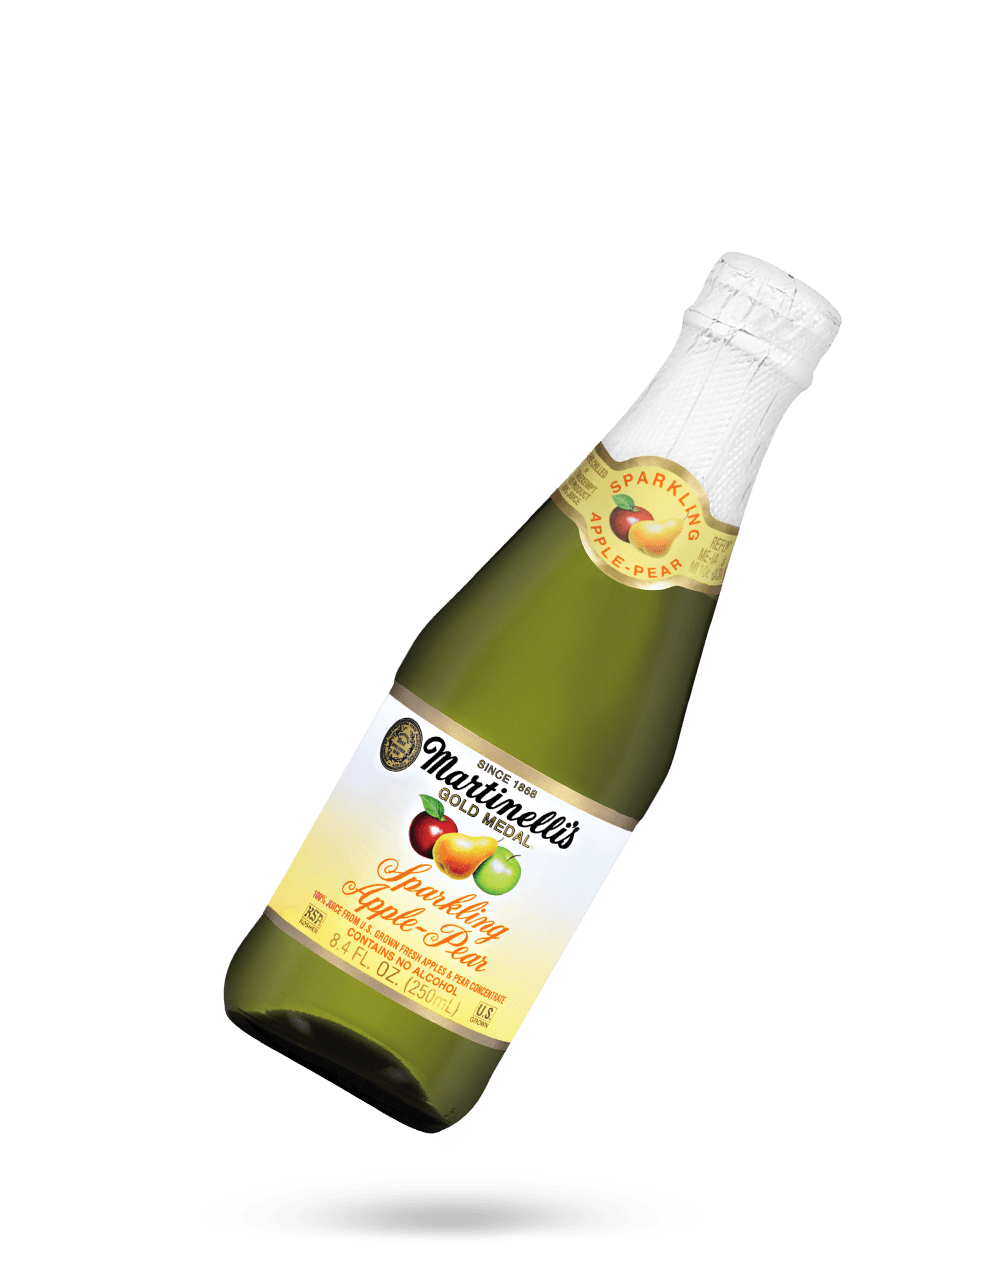 Sparkling Apple-Pear 8.4 fl. oz.